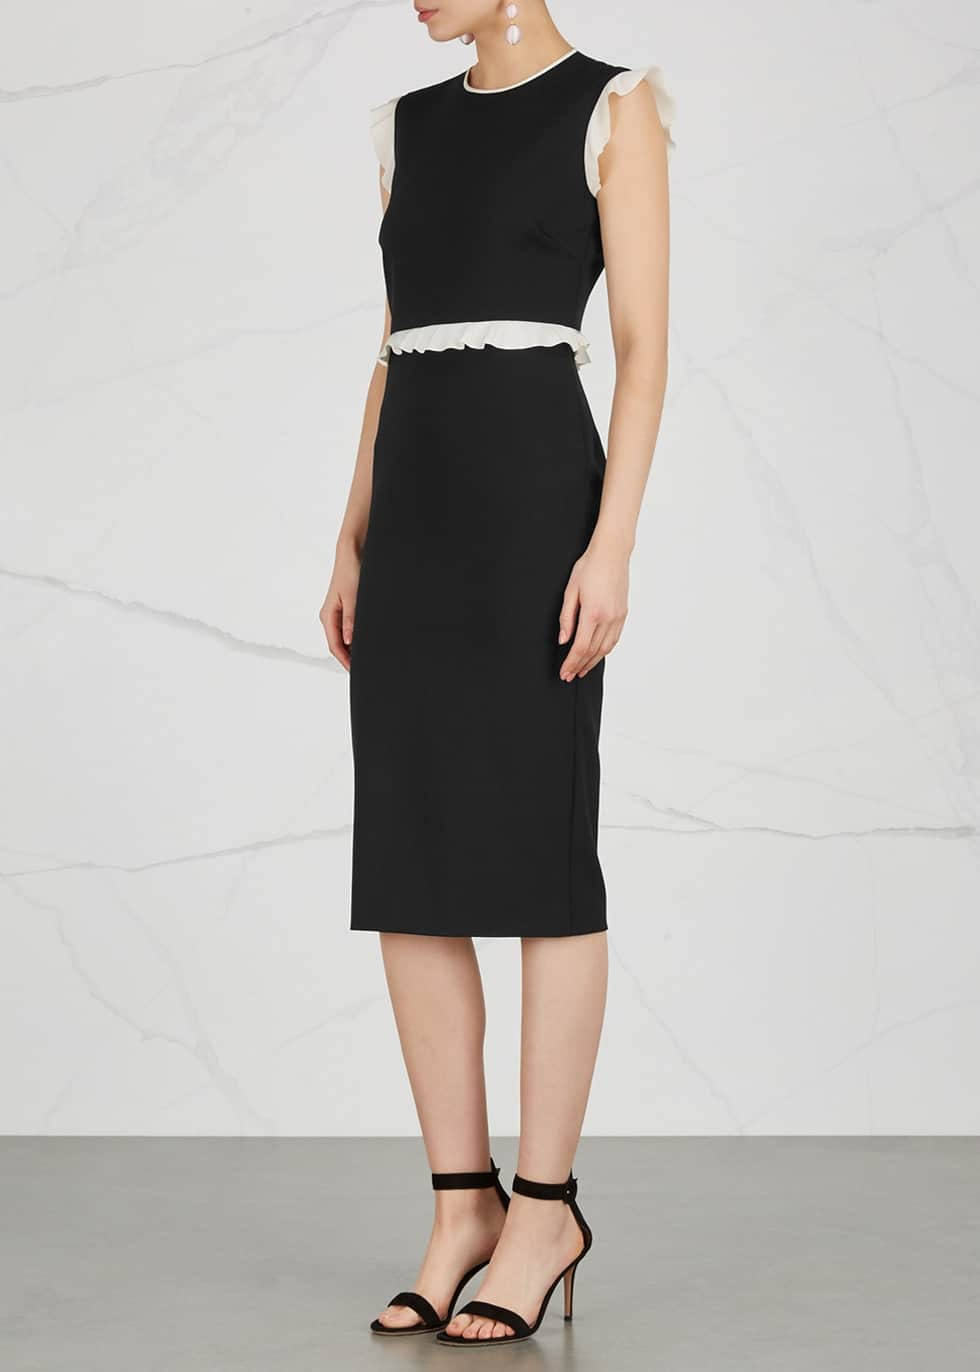 RED VALENTINO Ruffle Trimmed Black Dress